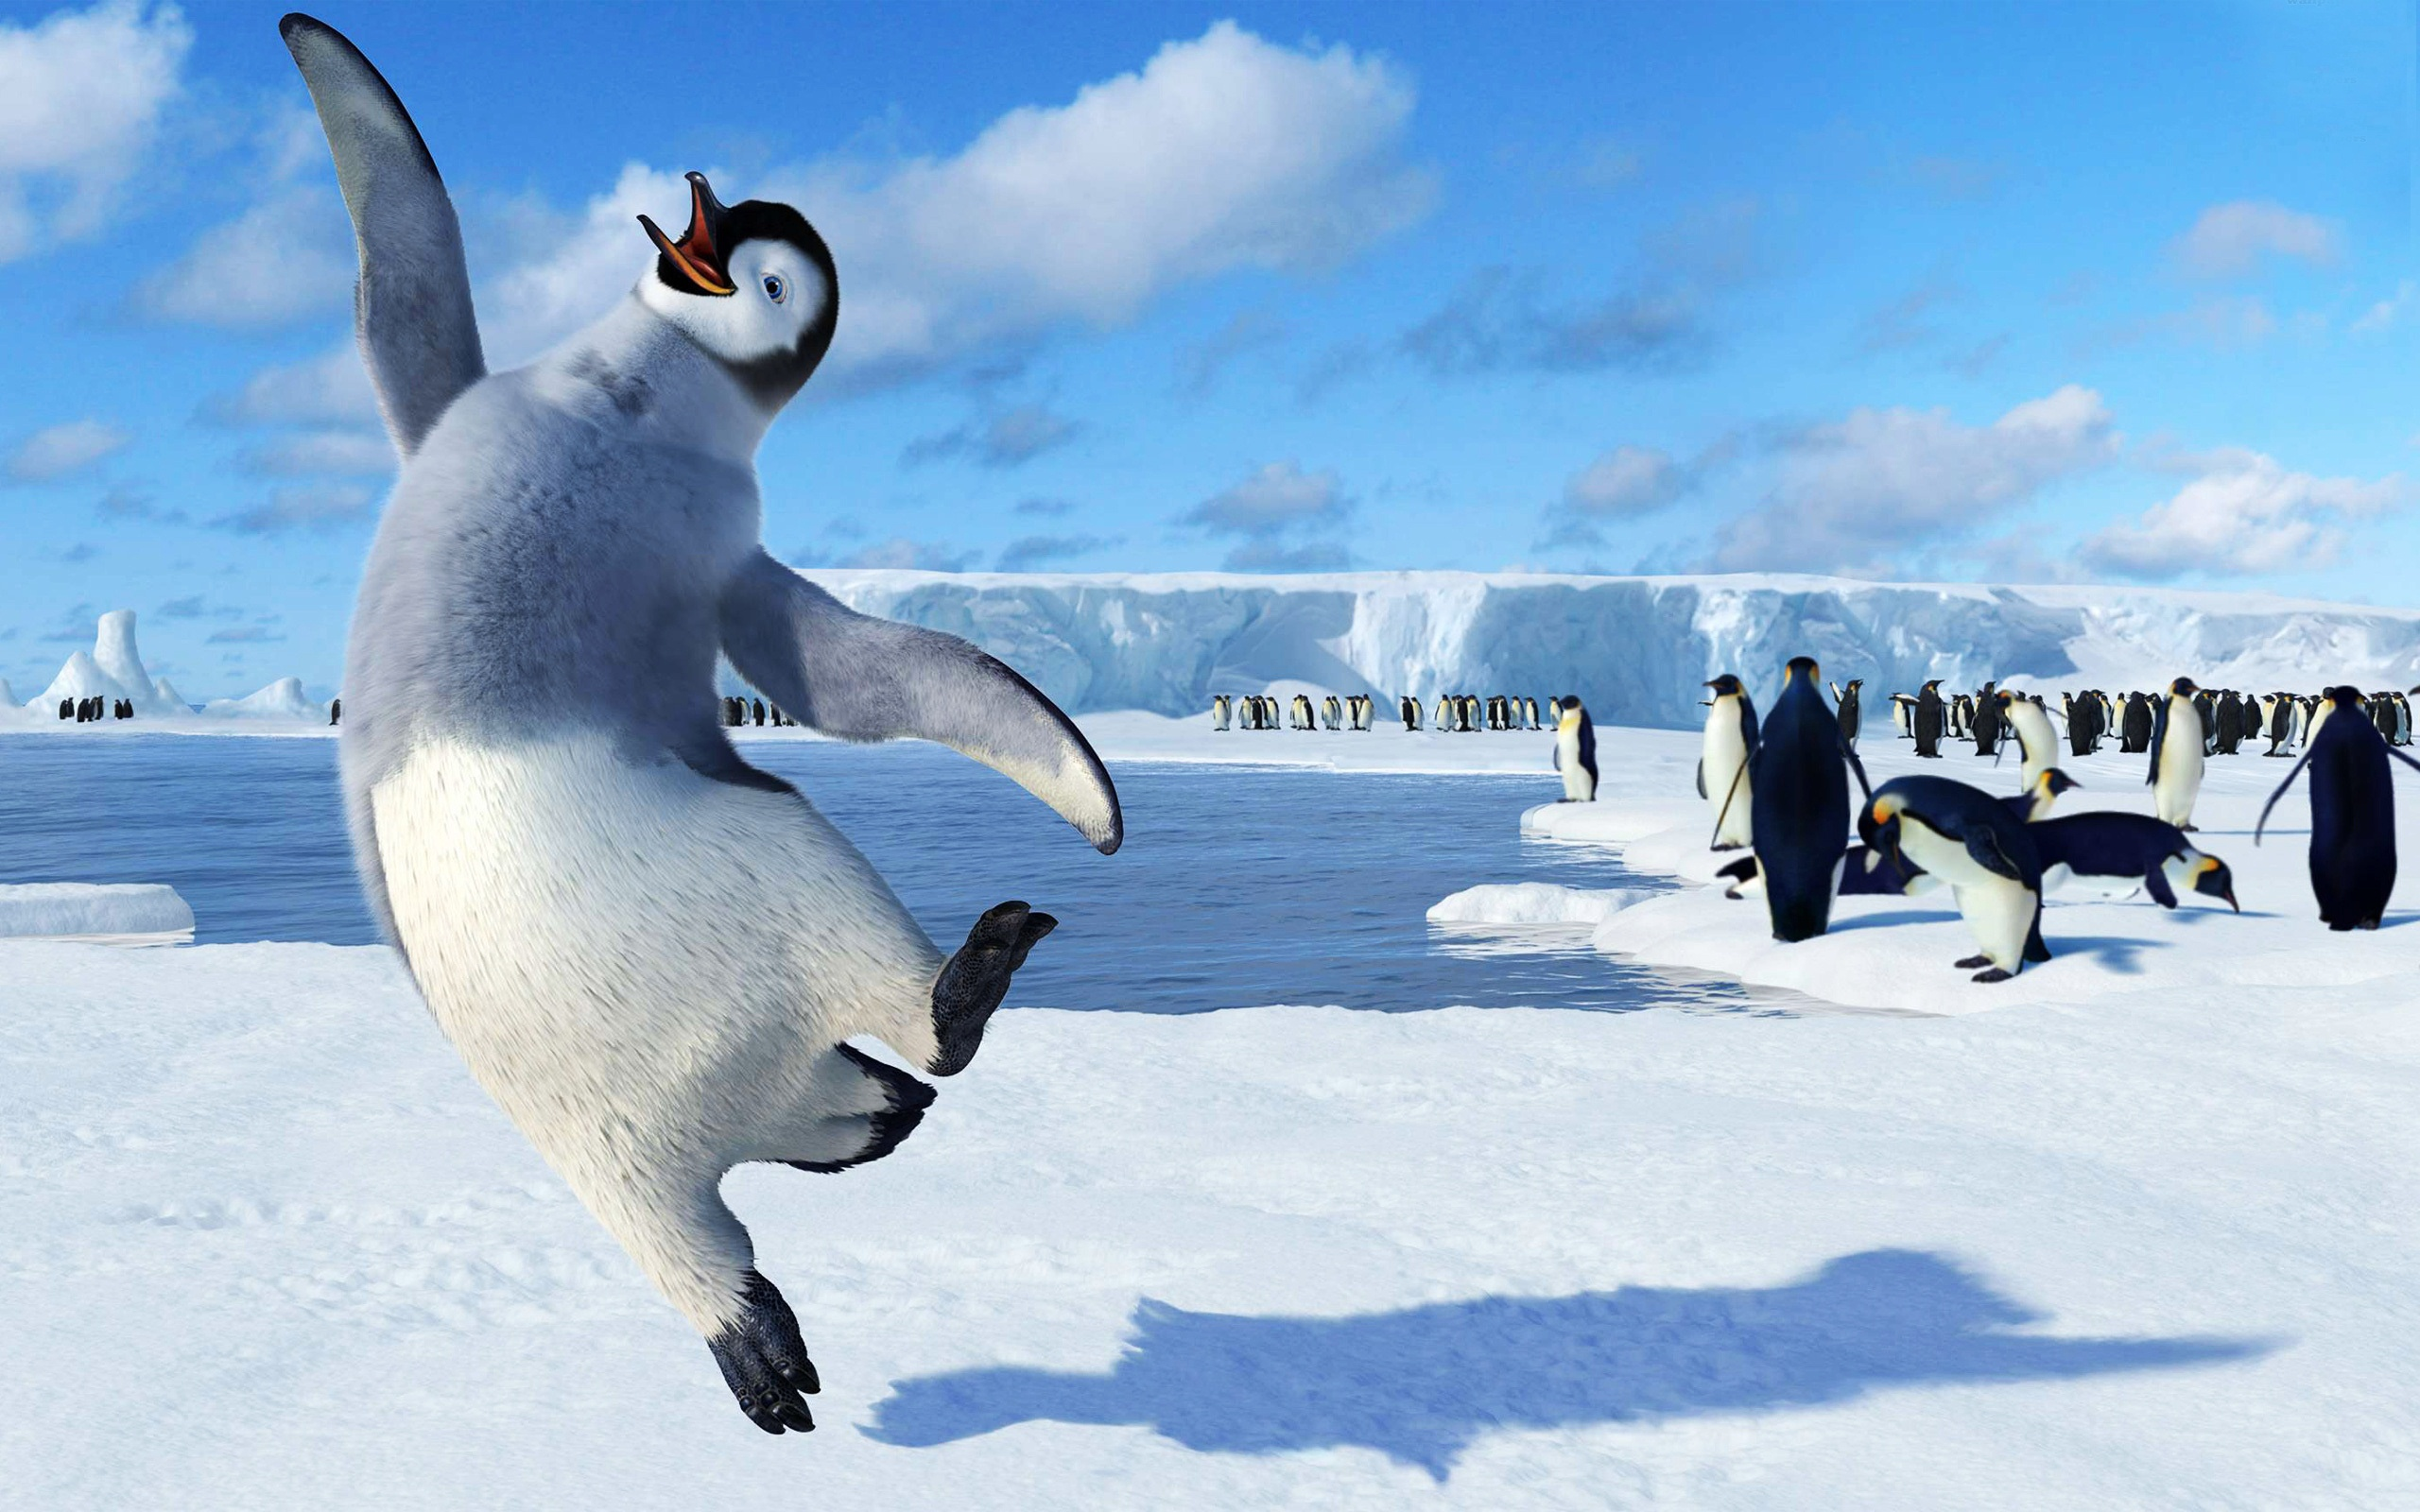 Happy Feet Wallpapers HD Wallpapers 2560x1600